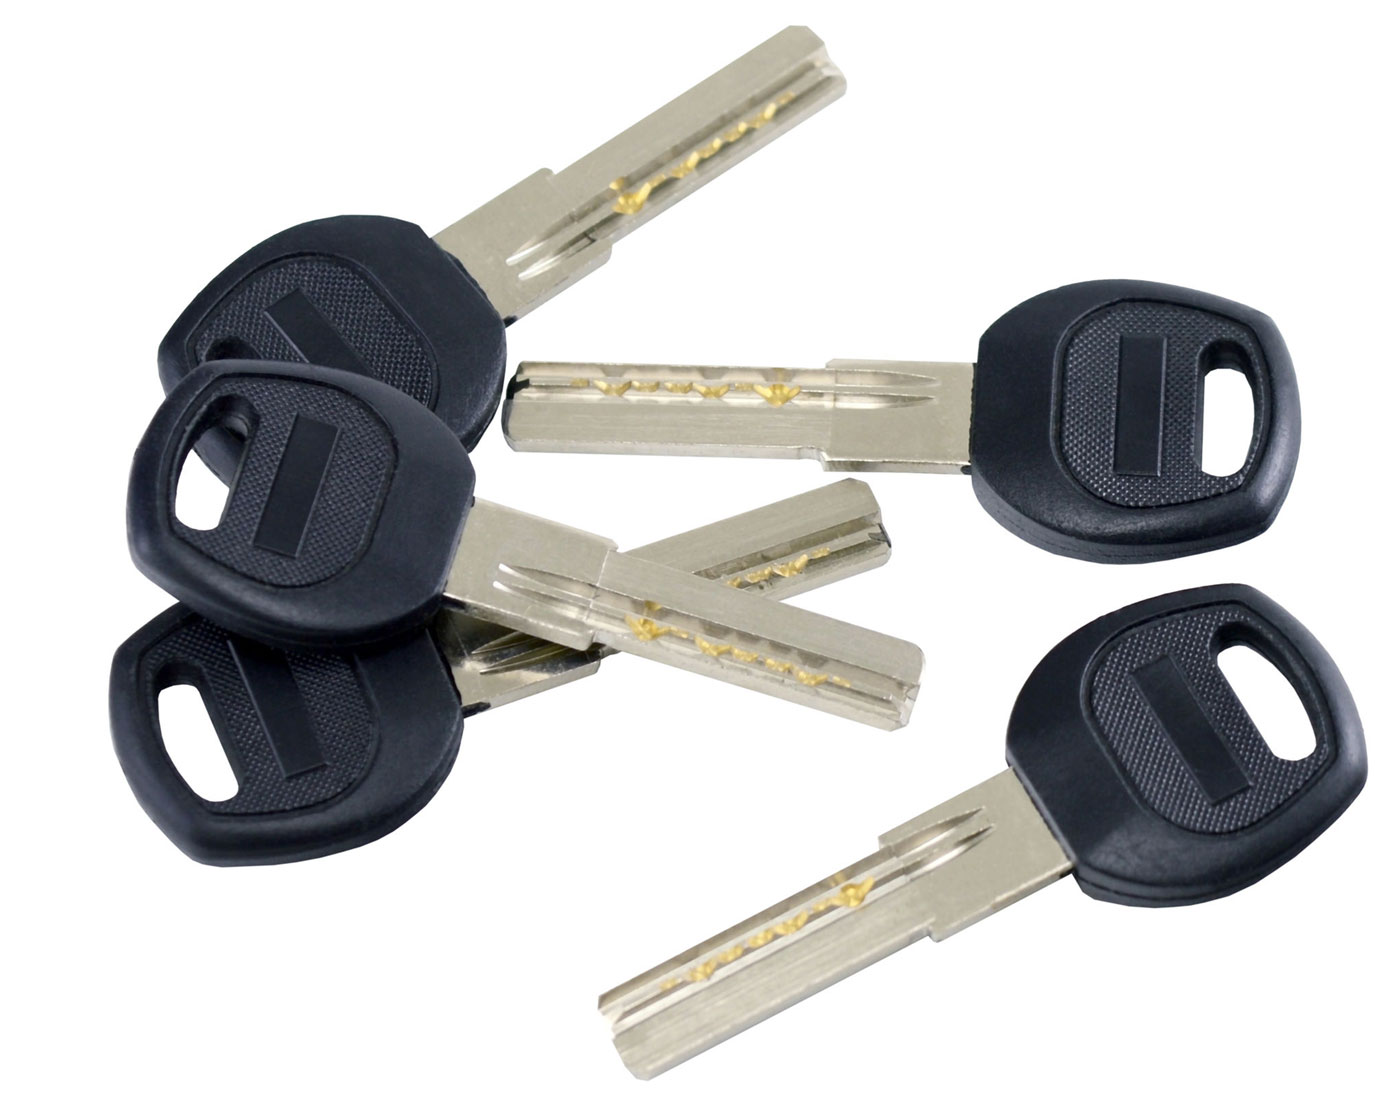 Automotive Locksmith Master key